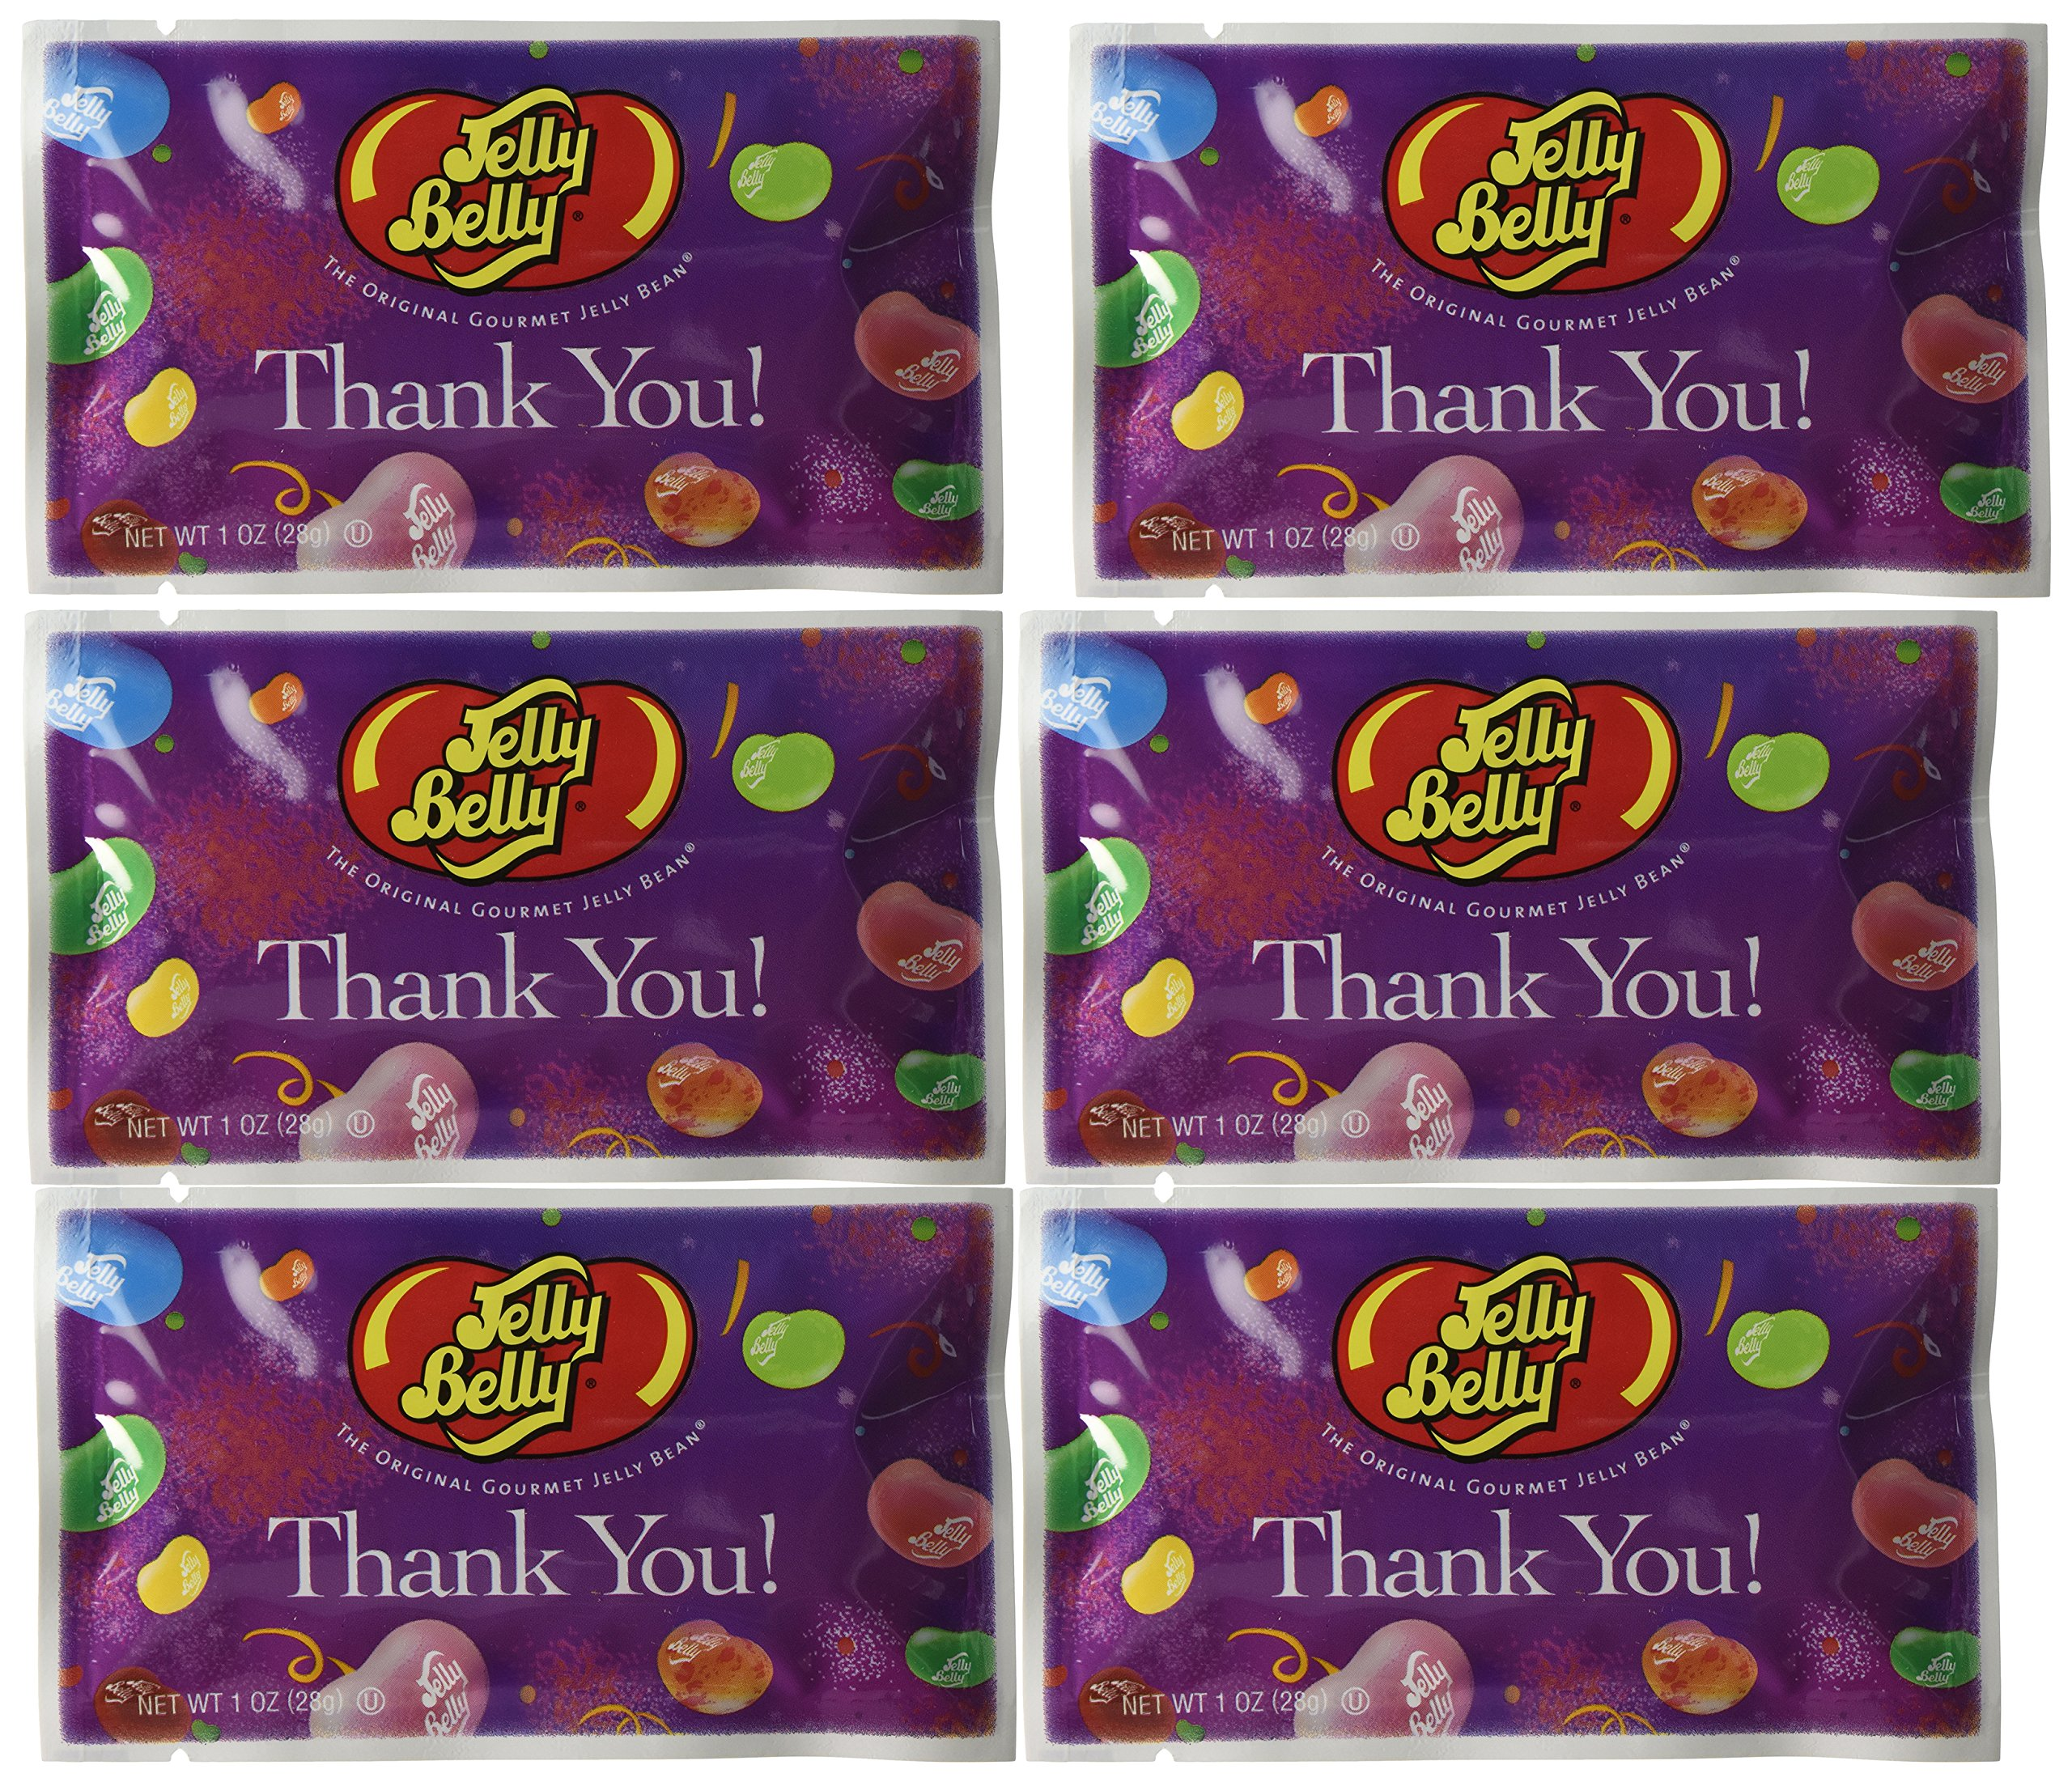 Thank You Assorted Flavors Jelly Beans - 1 oz. Bag - 30-Count Case by Jelly Belly